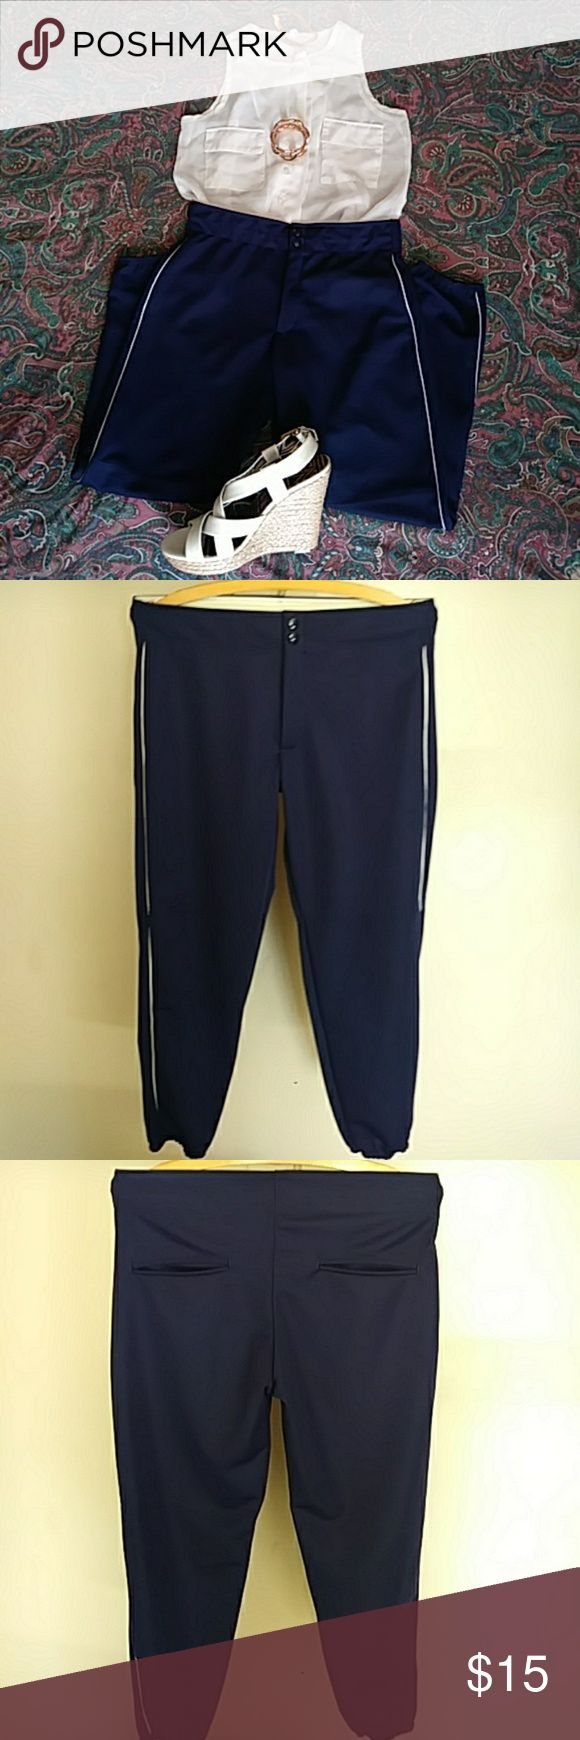 Augusta Sportswear Augusta Sportswear Ladies'/Girls' Low Rise Collegiate Pant. Wear them for sport or dress them up with boots or heals. Perfect condition! 100% Cotton. Size Ladies M. Augusta Sportswear Pants Track Pants & Joggers